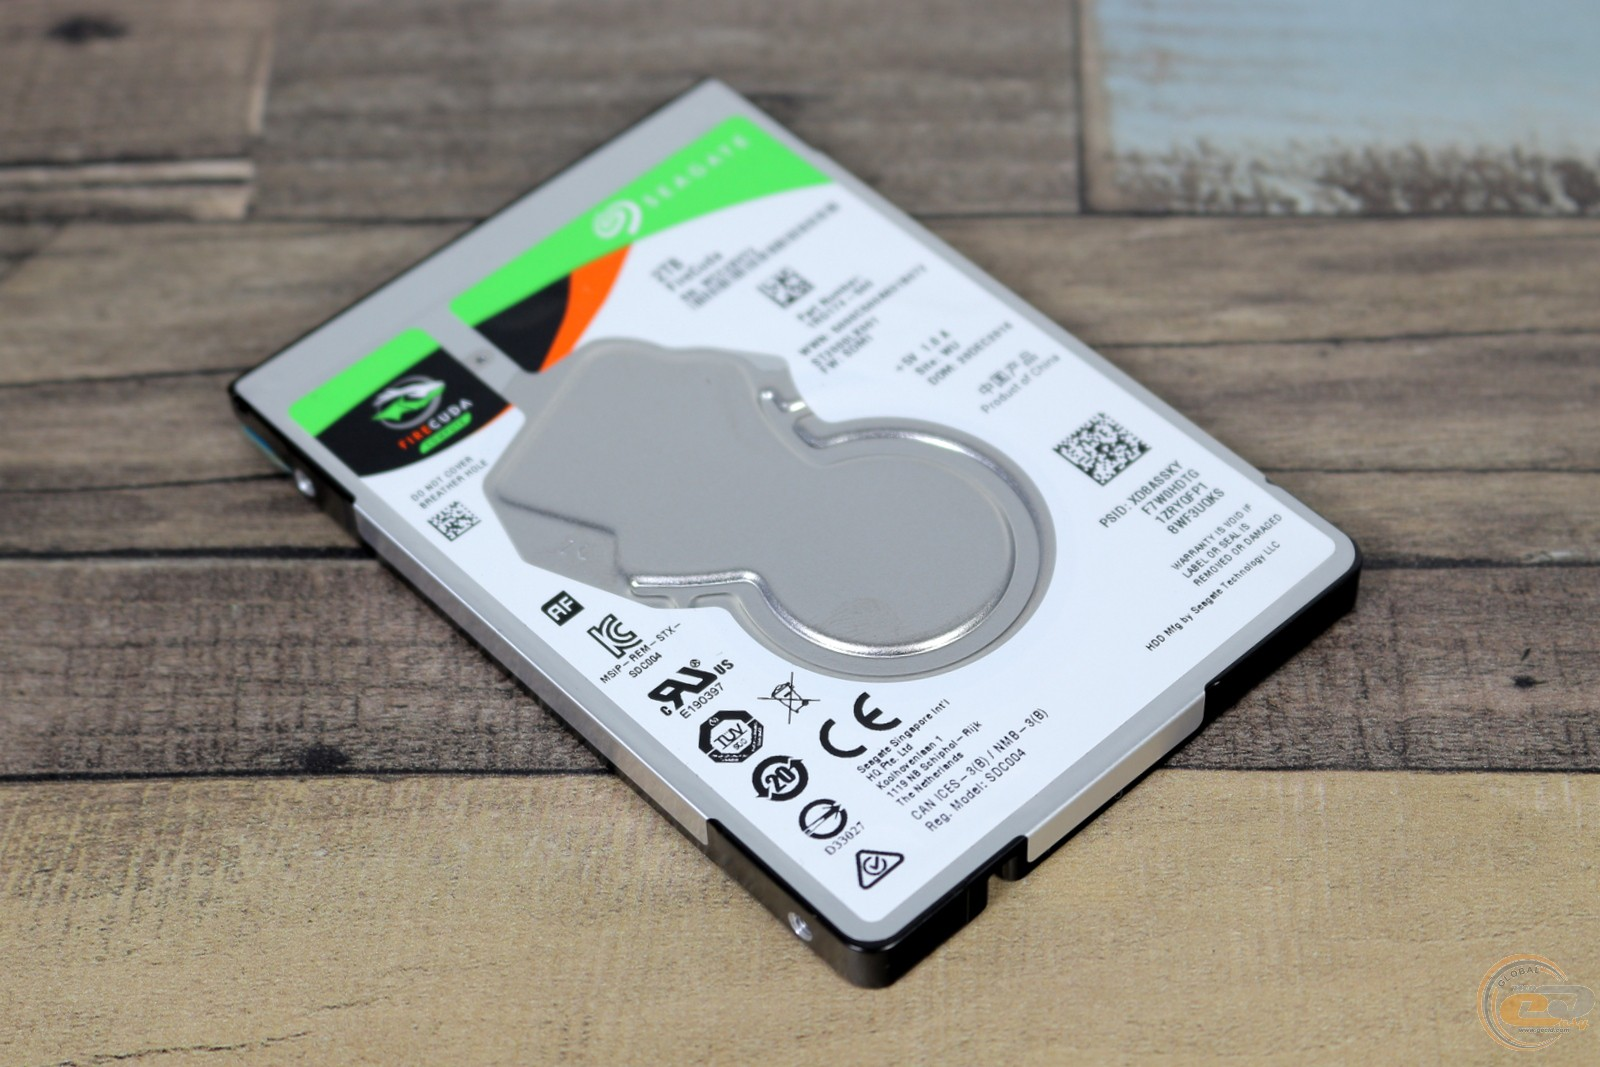 Sshd Seagate Firecuda St2000lx001 2 35 Inch 2tb 5 Years Warranty Hddssd For Pc Gaming